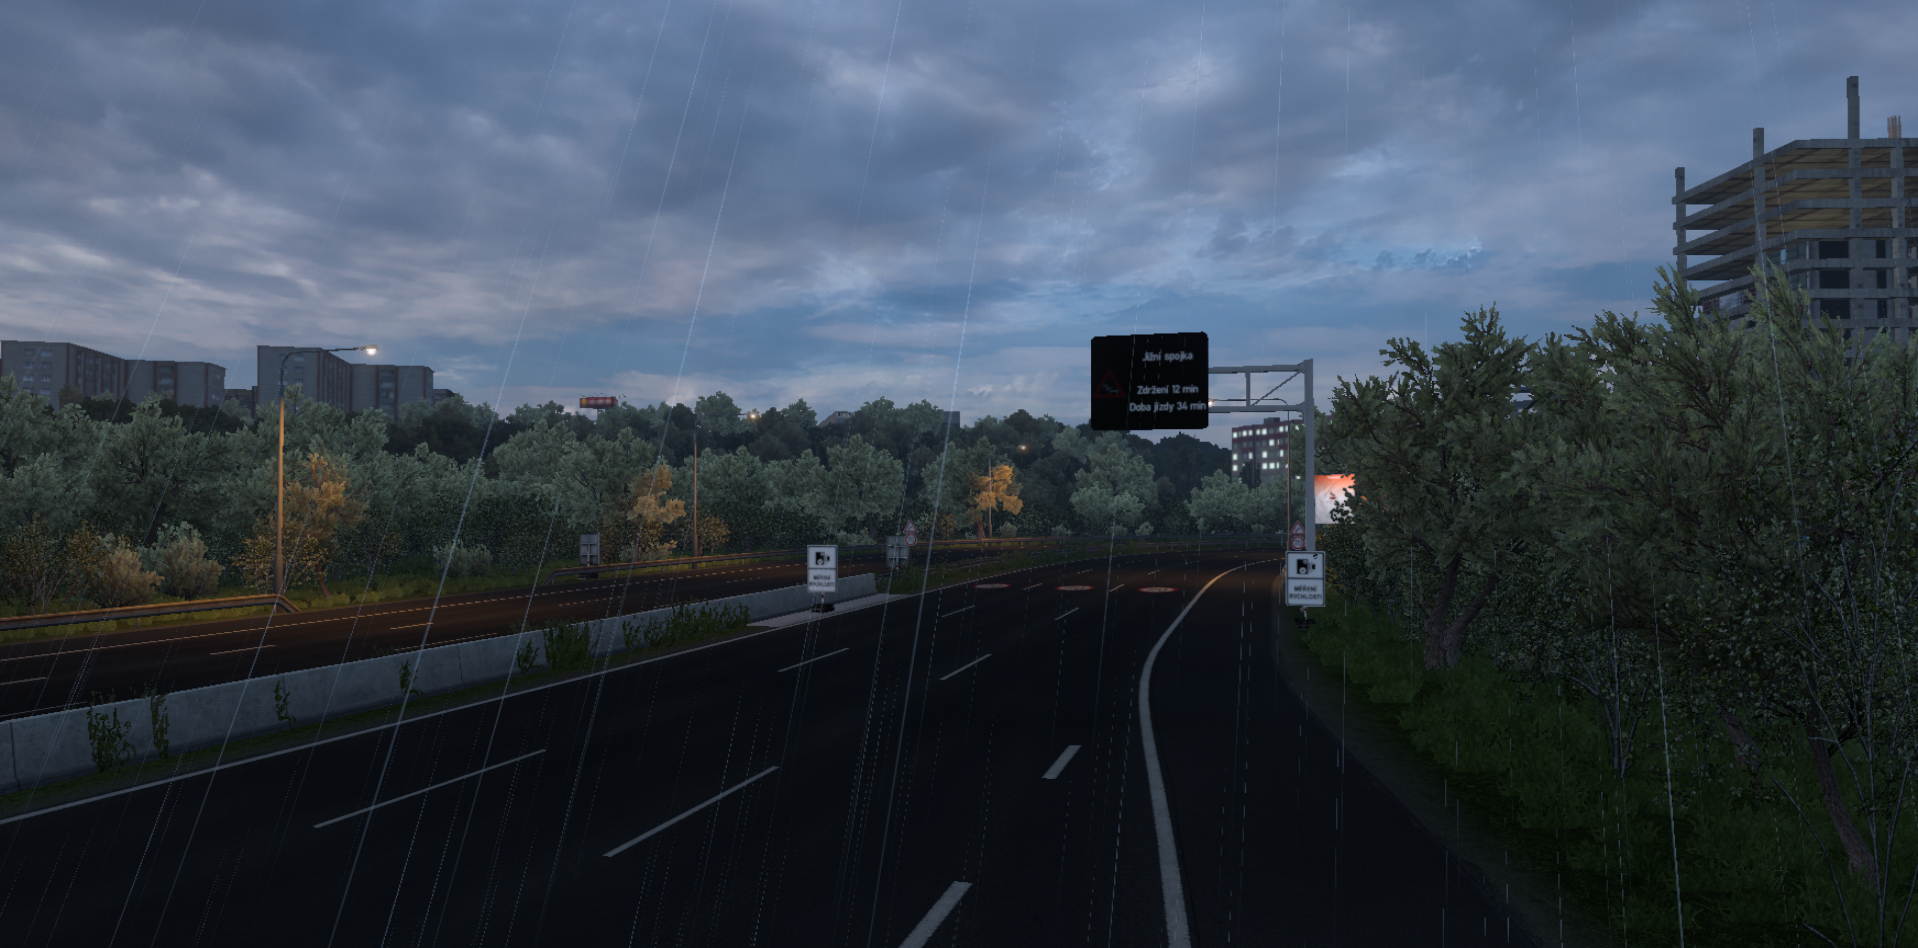 ets2_20210804_144356_00.png